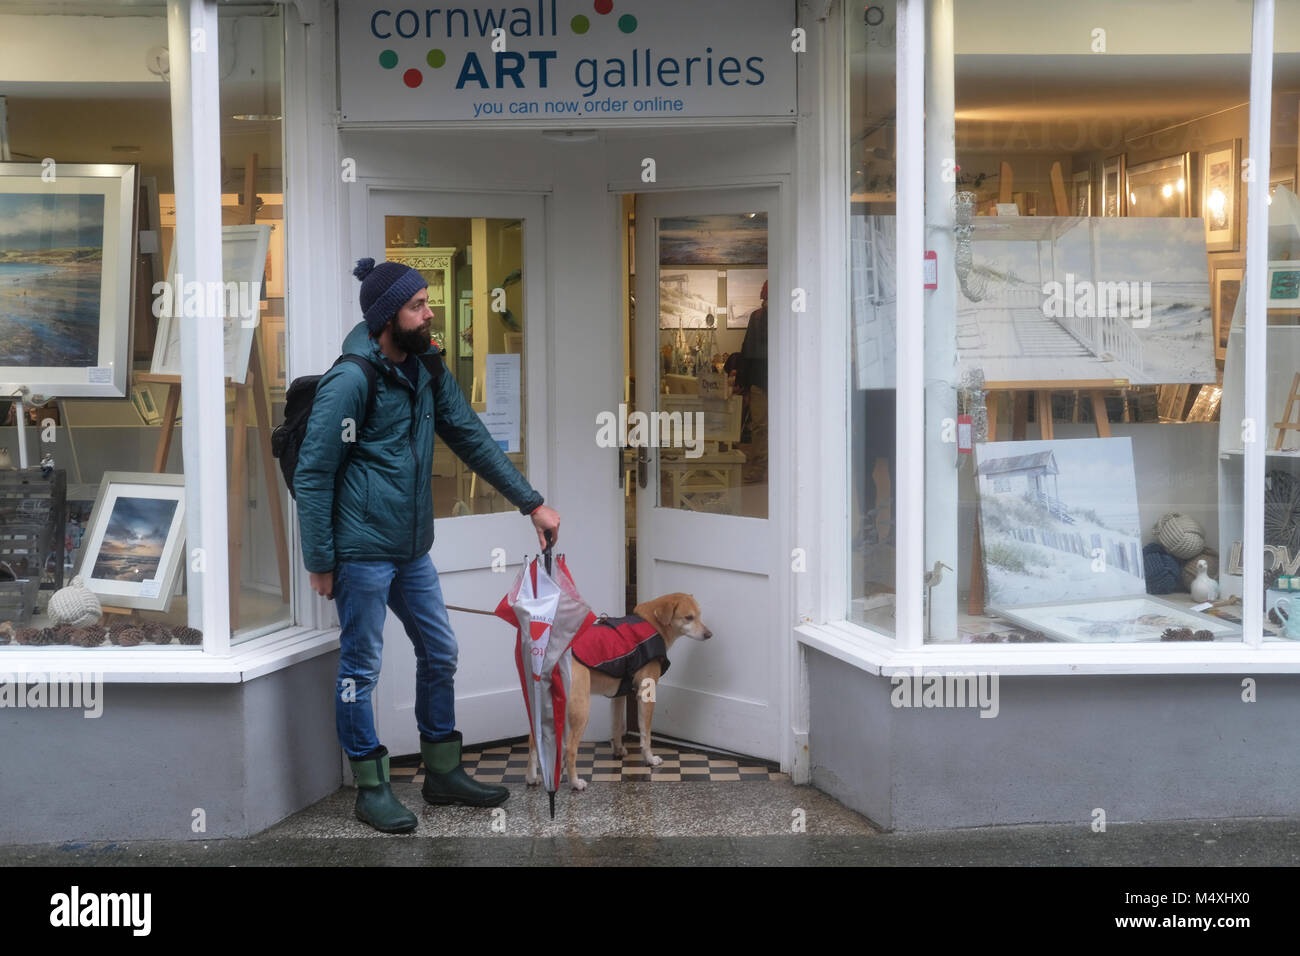 A man and his dog sheltering from the rain. - Stock Image